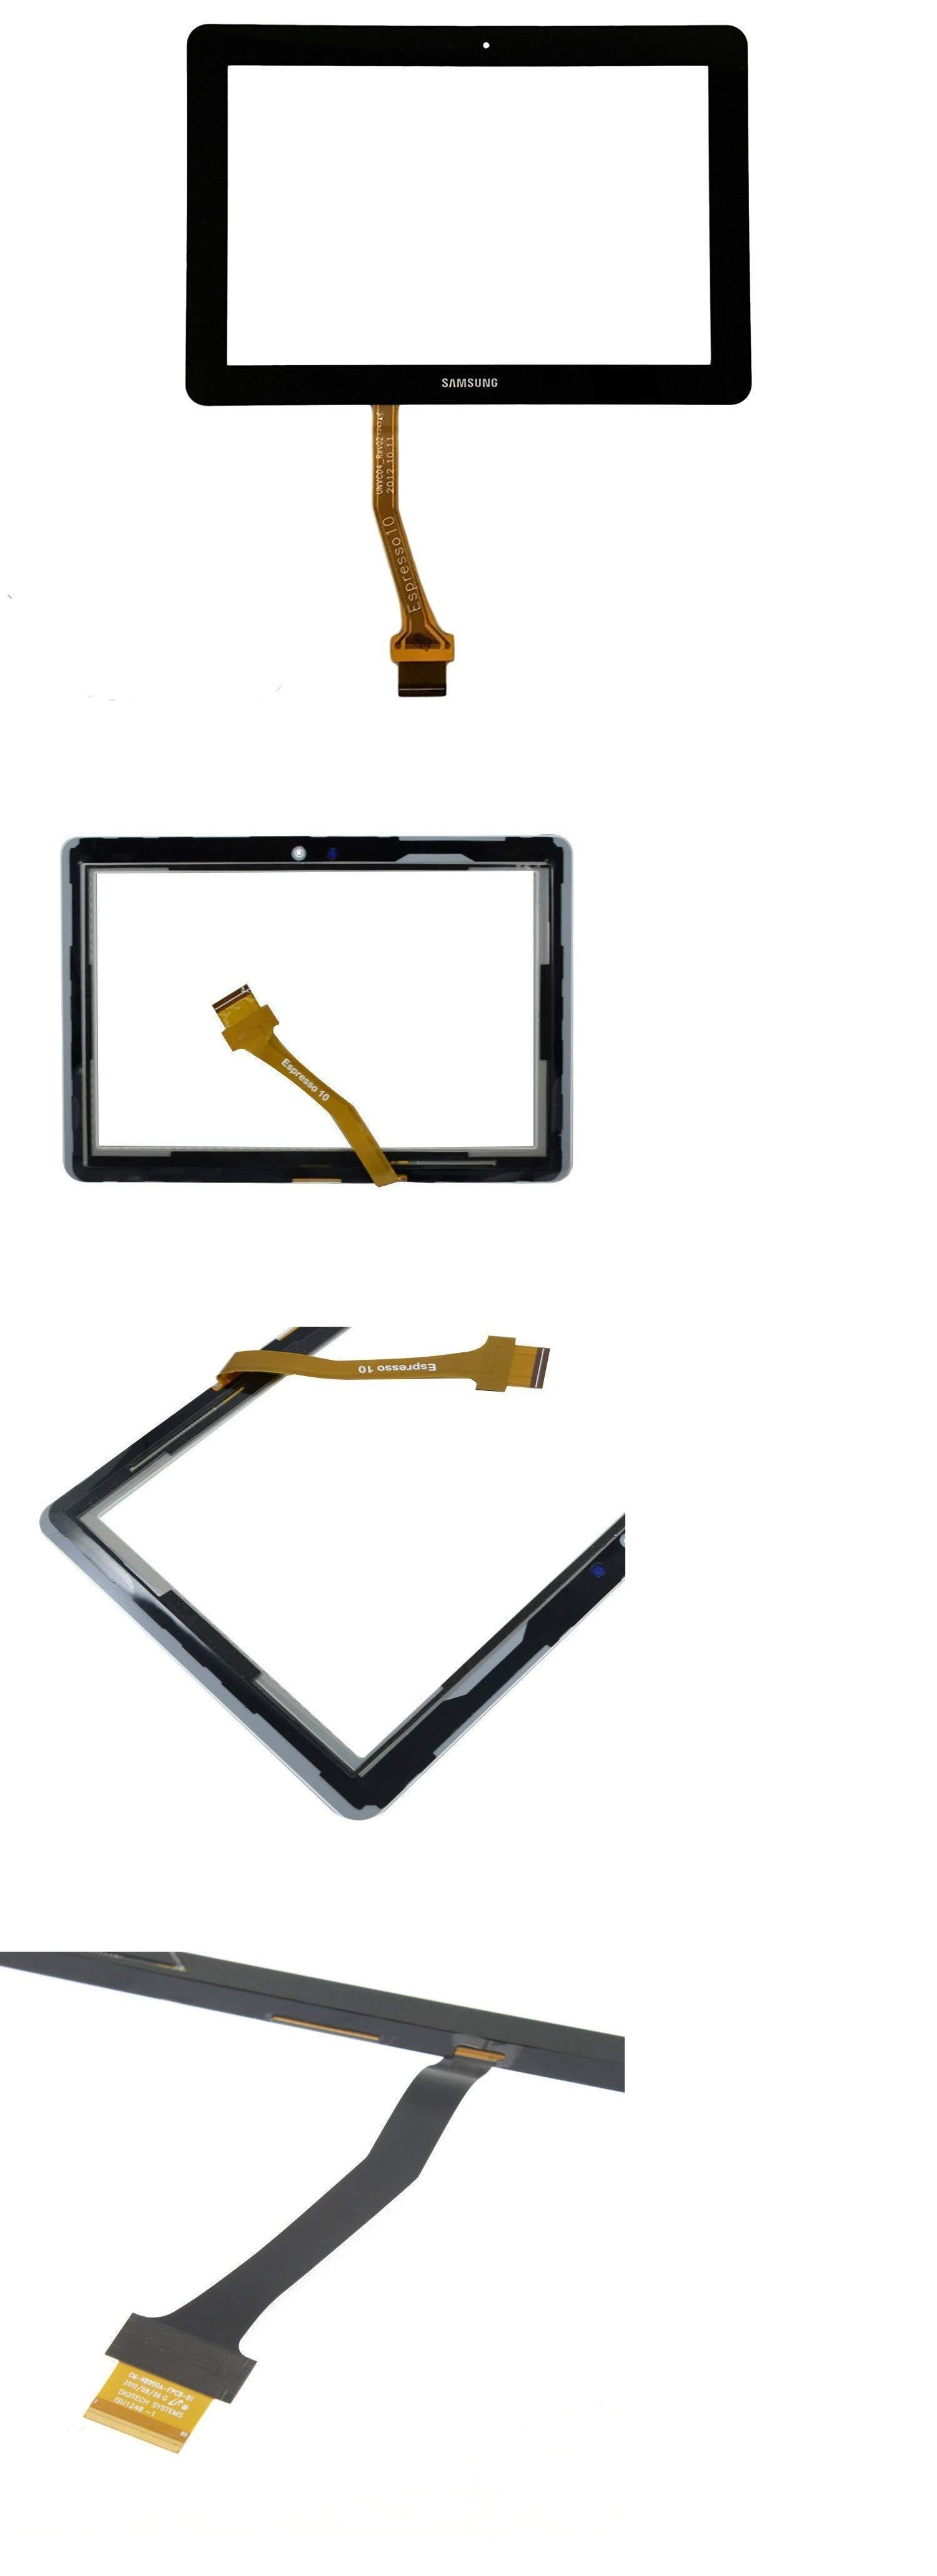 CA FOR V700 VK700 LG G Pad 10.1 Wi-Fi Verizon LCD Screen Digitizer Touch Replace